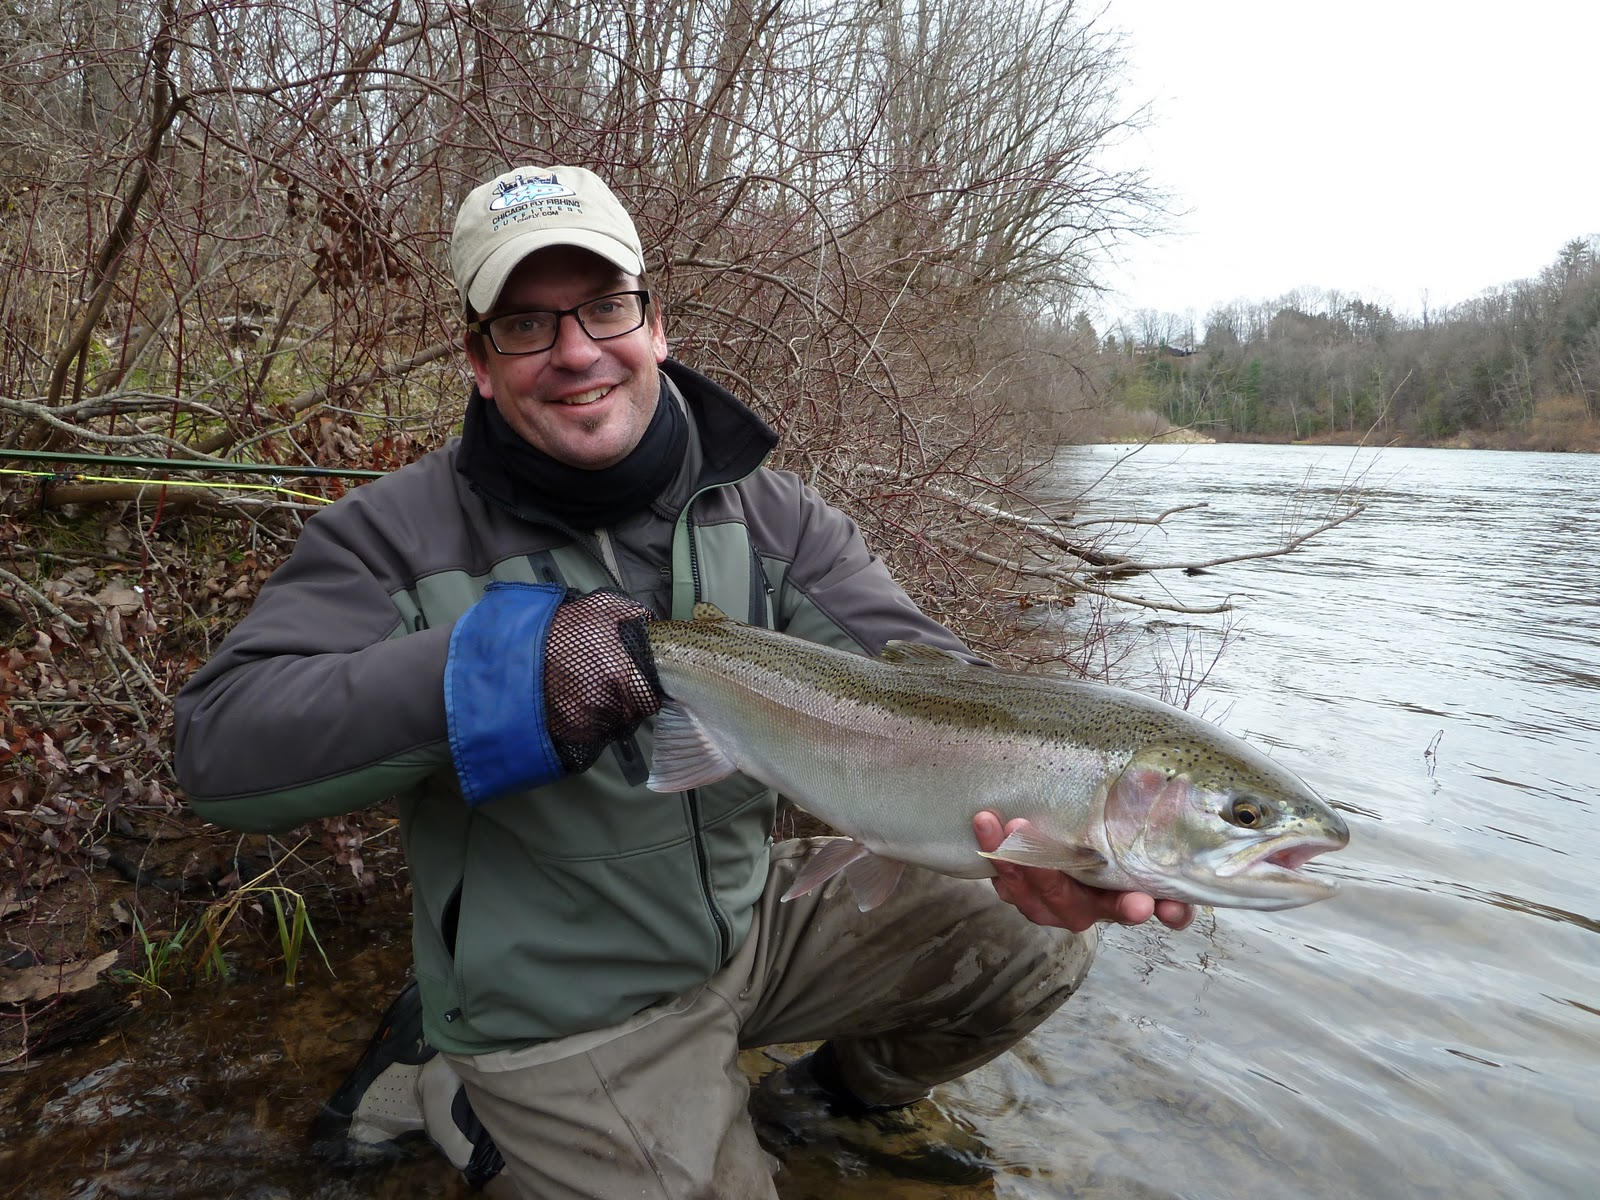 Blog chicago fly fishing outfitters november for Chicago fly fishing outfitters